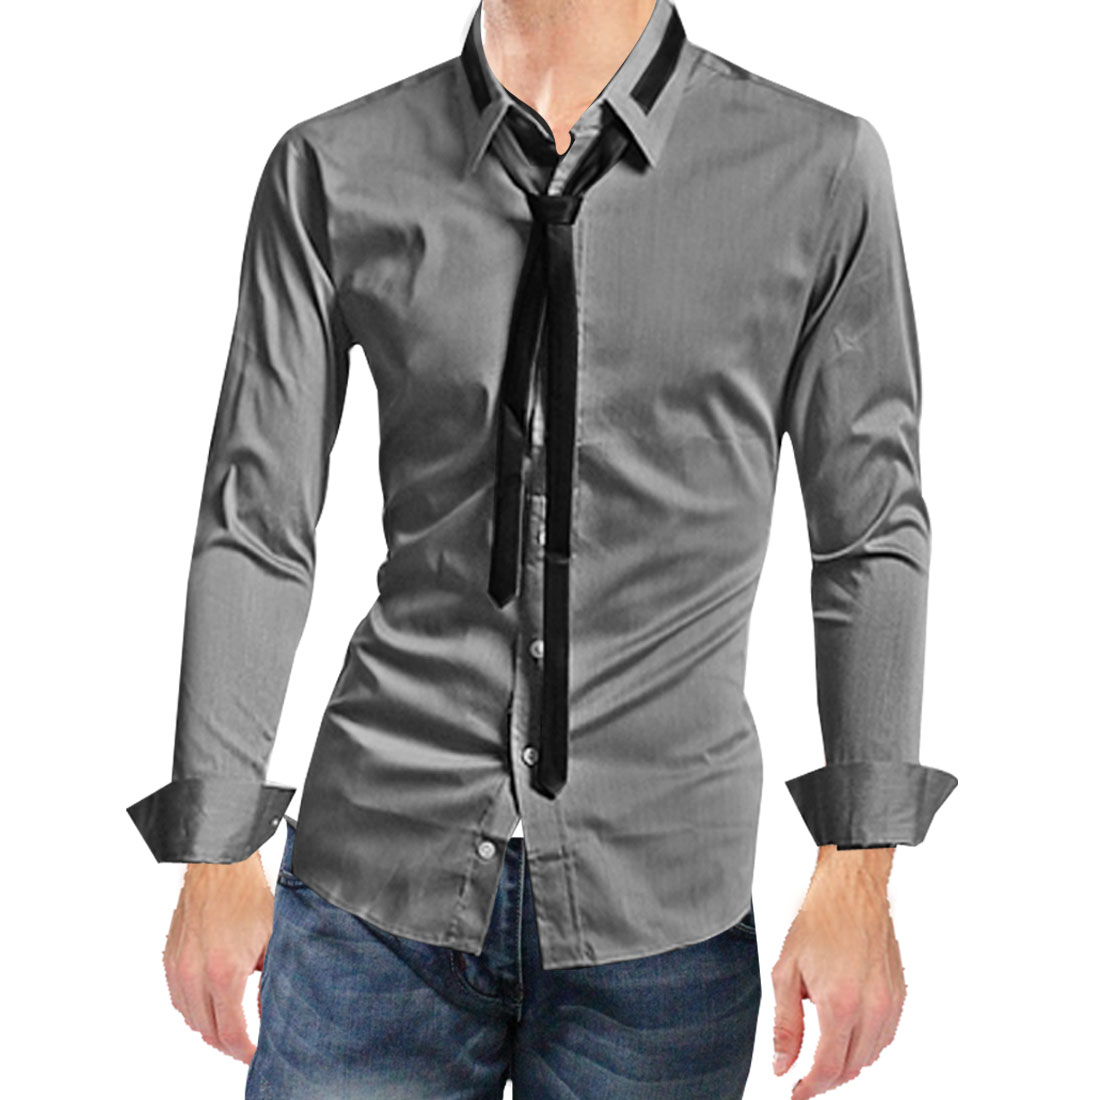 Mens Dark Gray Stylish Round Hem Solid Color Single Breasted Leisure Shirt M